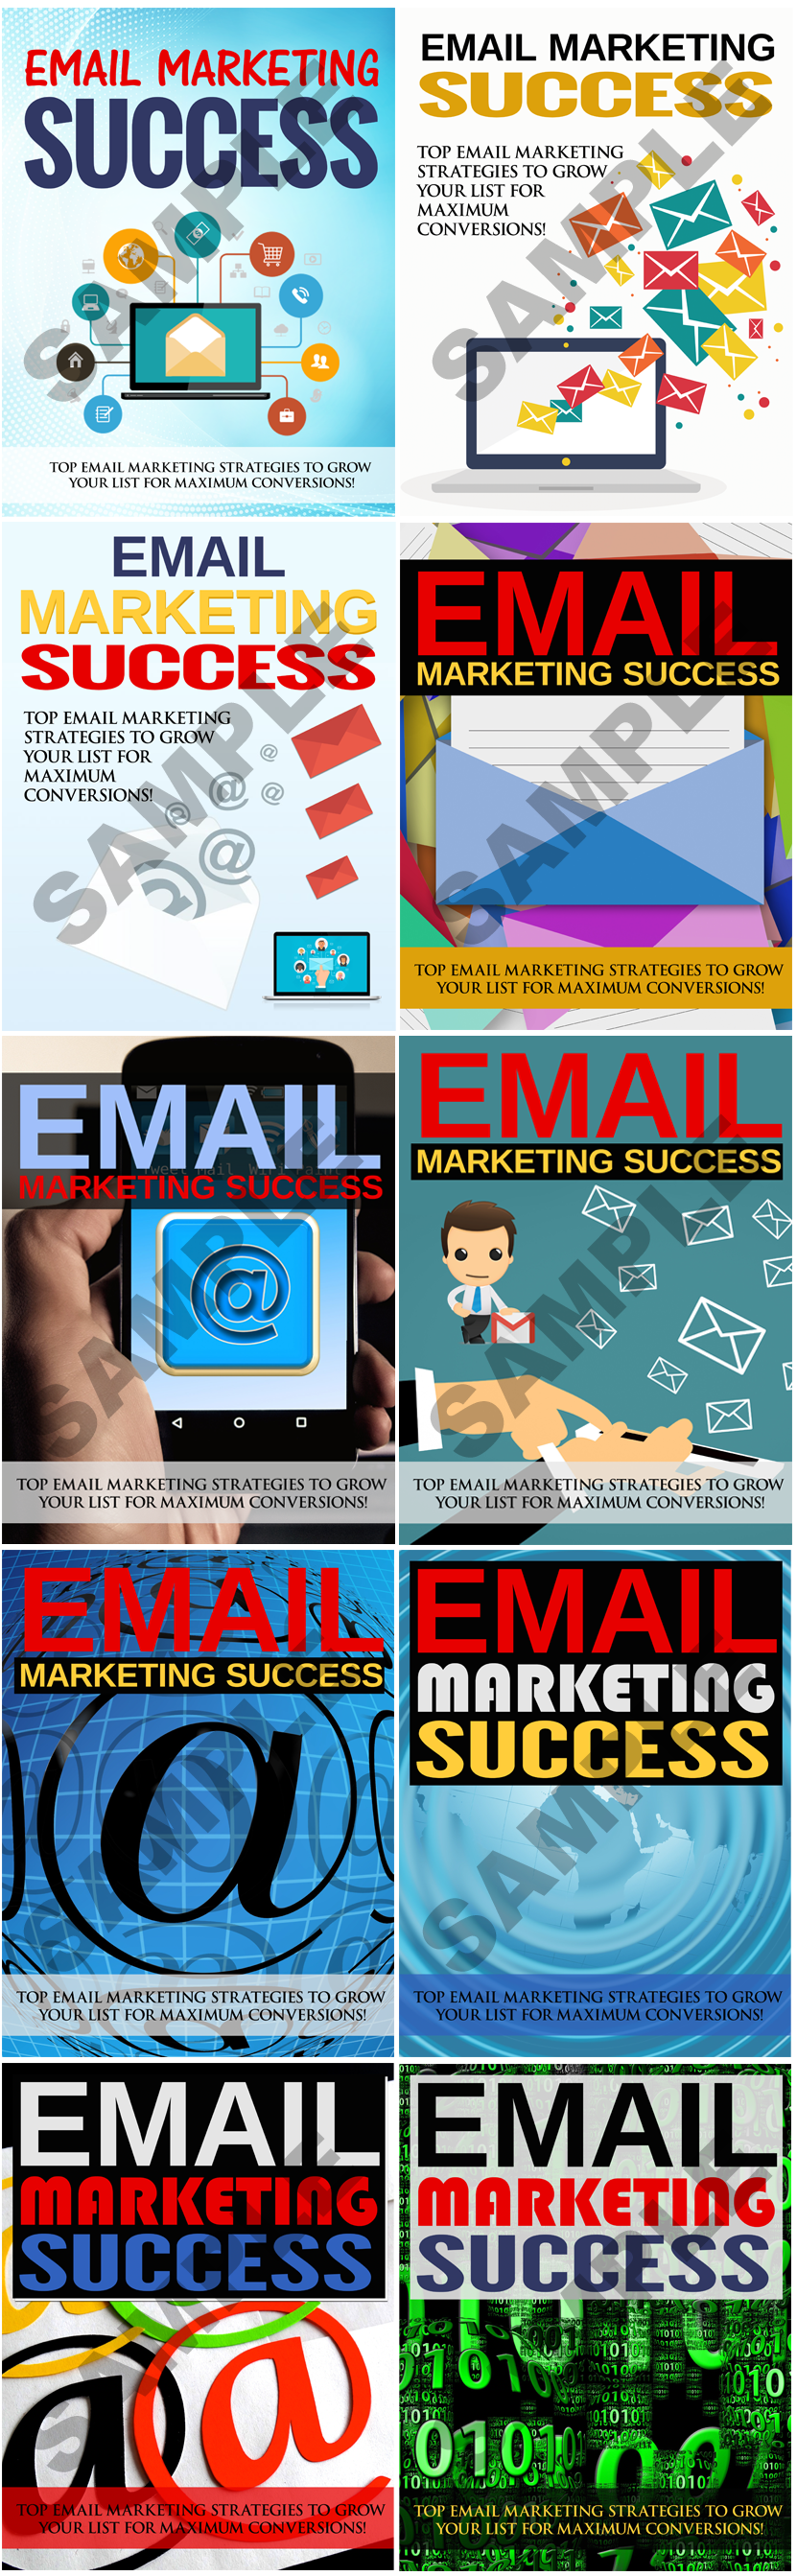 Email Marketing Success Extra High Quality Ecovers